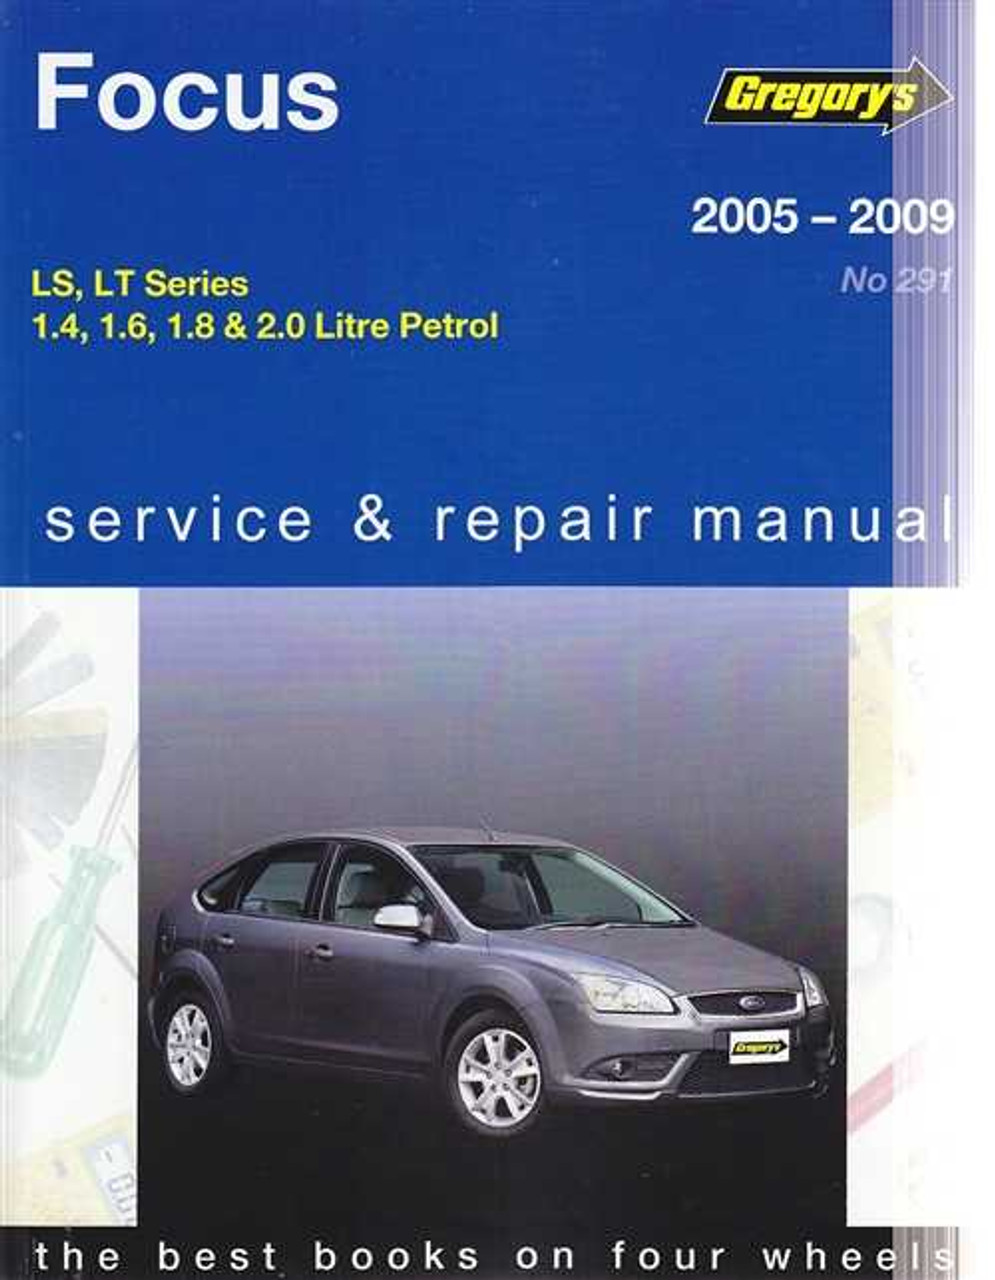 ford focus ls lt series petrol 2005 2009 workshop manual rh automotobookshop com au ford focus 2005 manual transmission ford focus 2005 manual repair